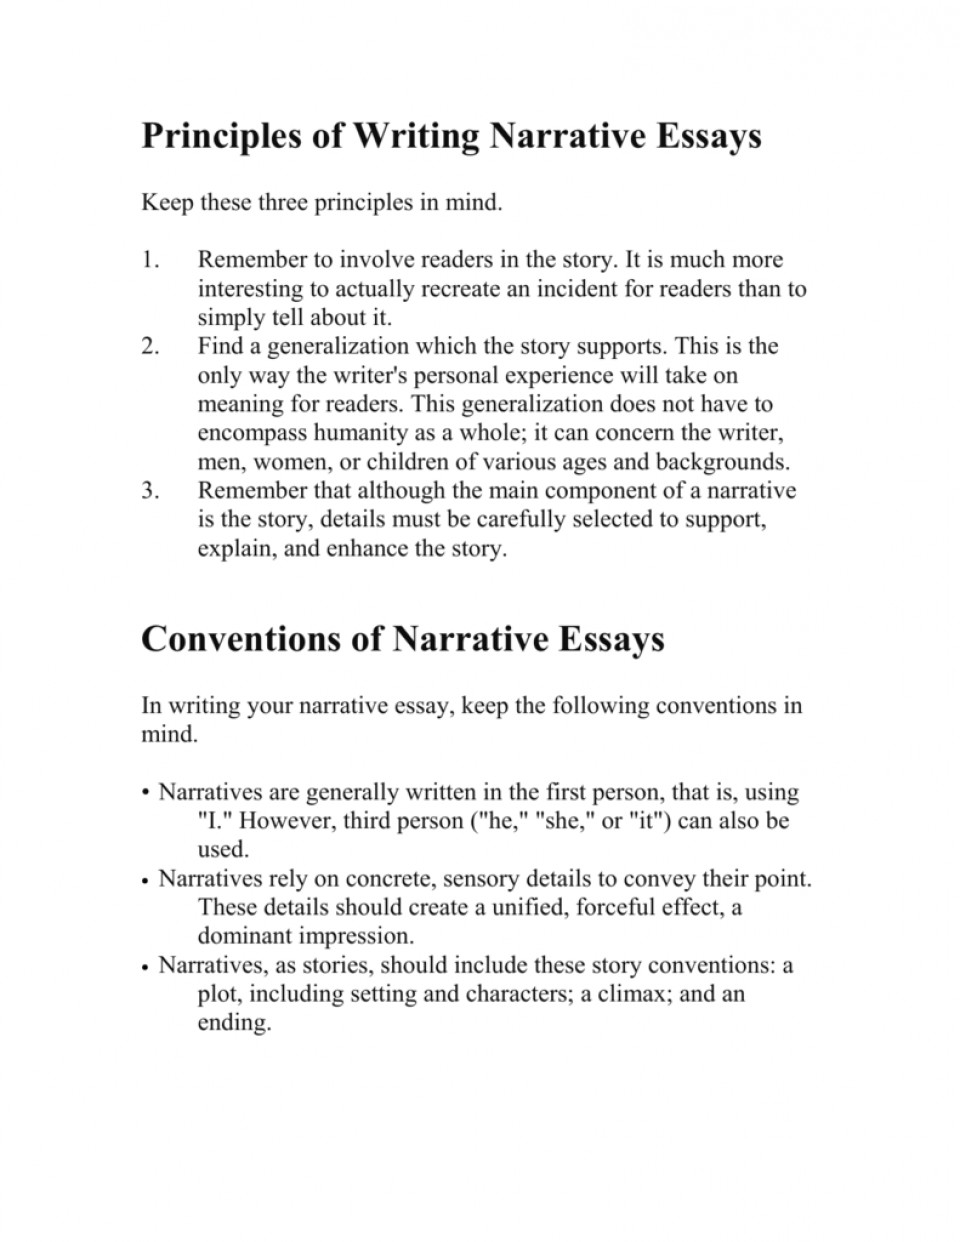 014 007210888 1 Essay Example Writing Amazing A Narrative About Being Judged Quizlet Powerpoint 960